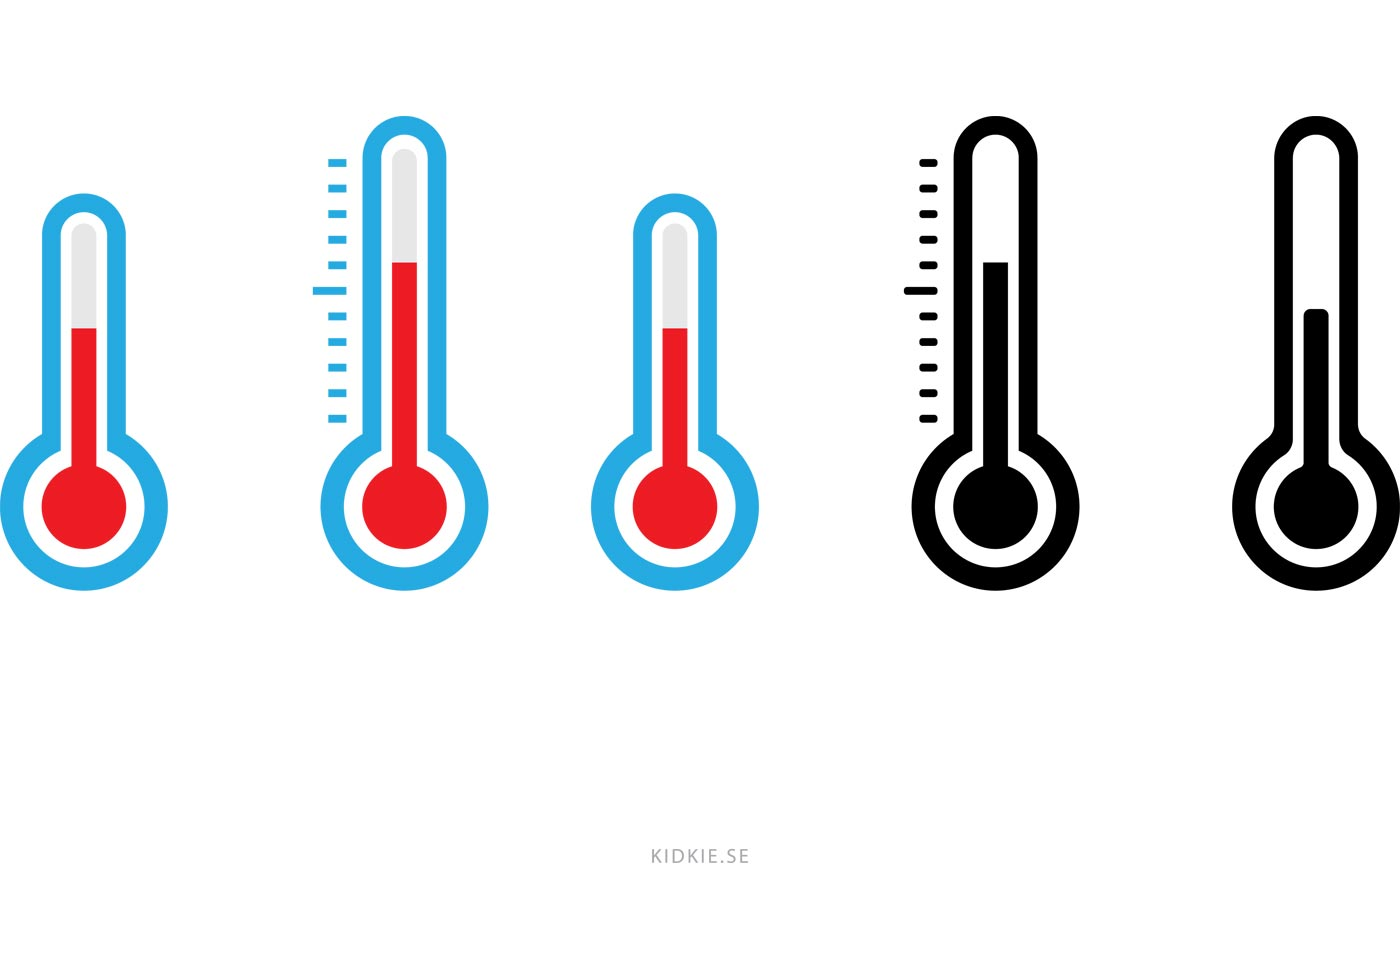 ... Vectors - Download Free Vector Art, Stock Graphics & Images: www.vecteezy.com/miscellaneous/59181-simple-thermometer-vectors